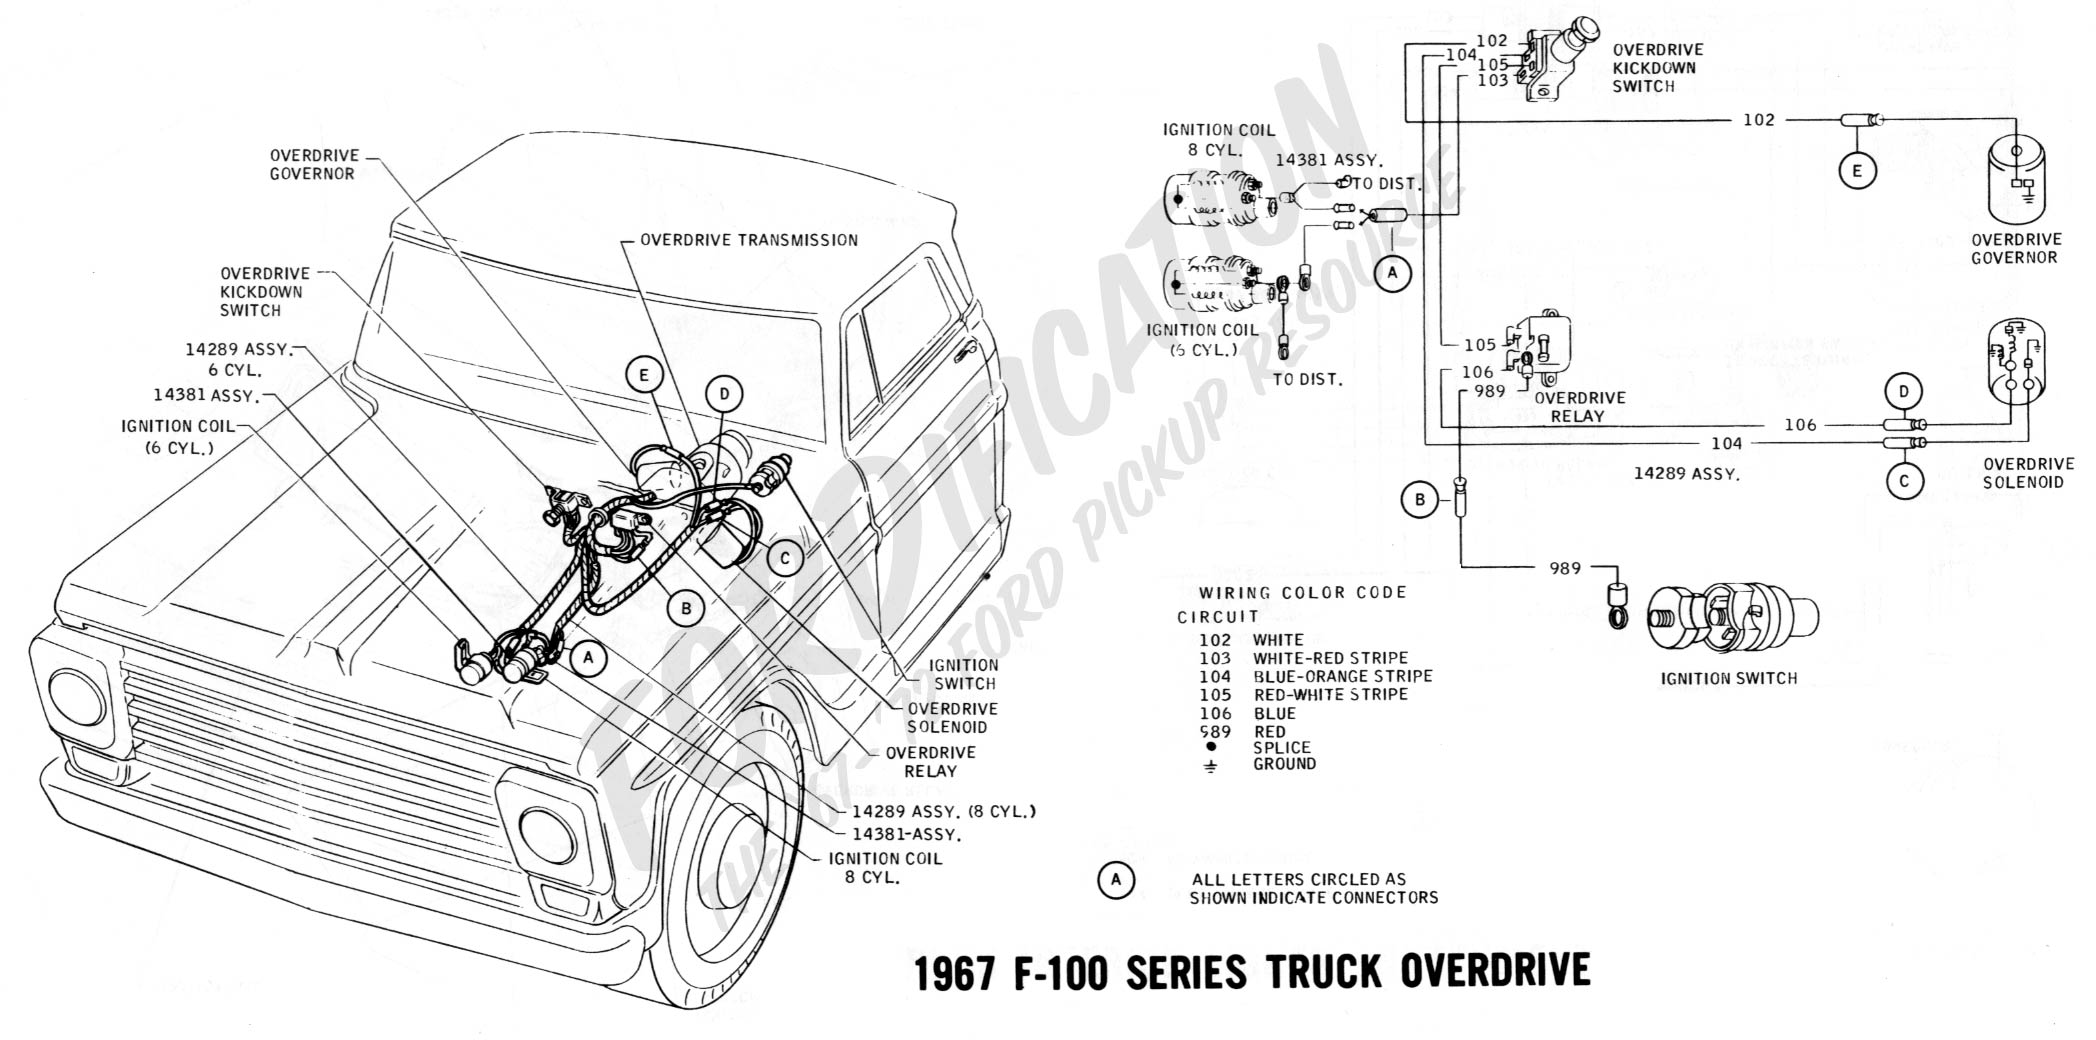 1969 Ford F100 Fuse Box Archive Of Automotive Wiring Diagram 1973 Dodge Dart 1968 Data Schema Rh Site De Joueurs Com